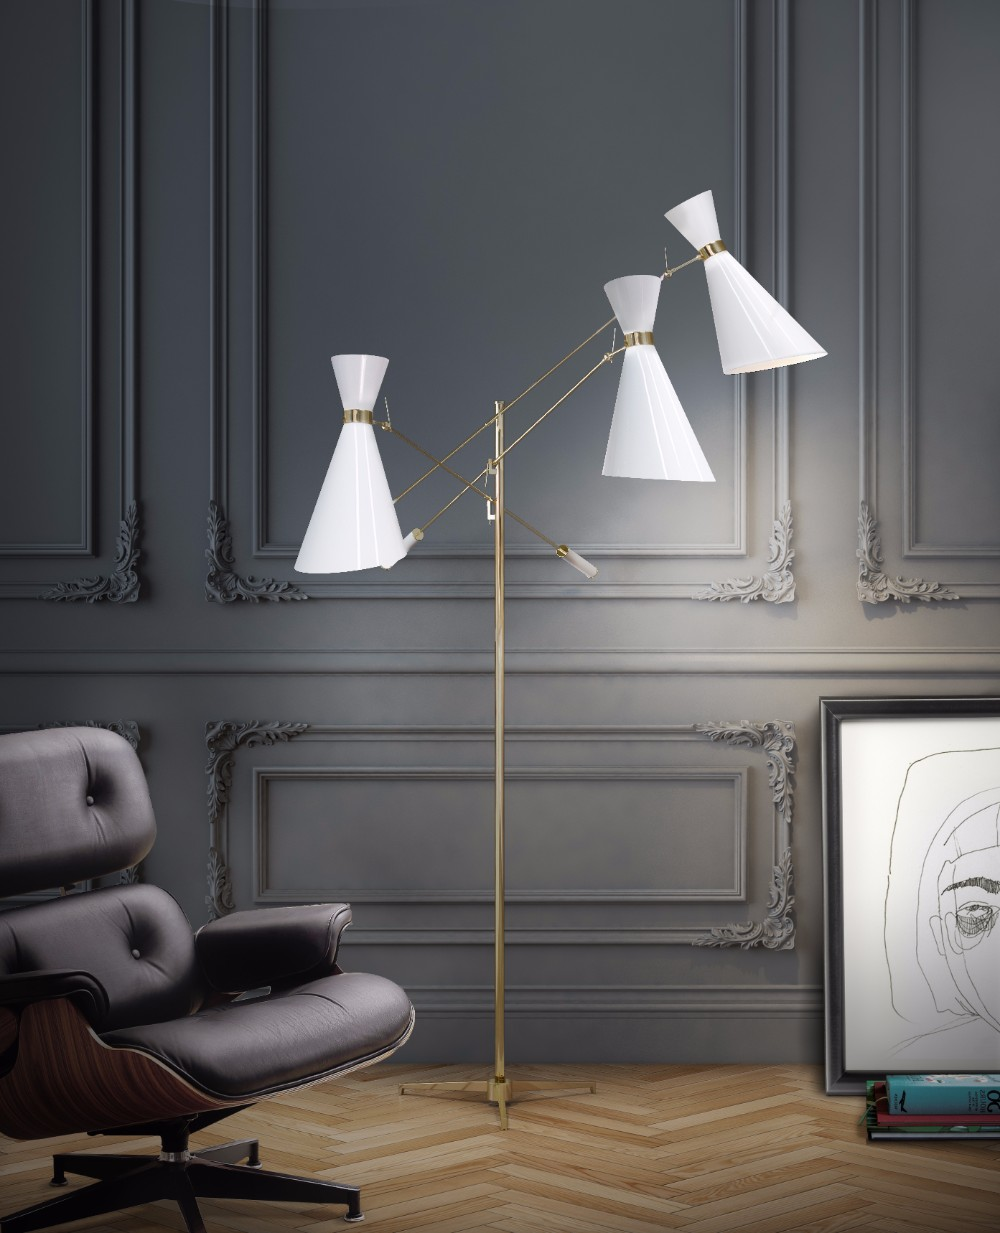 Winter Trends 5 Reasons Why Everyone Love White Floor Lamps 2 white floor lamps